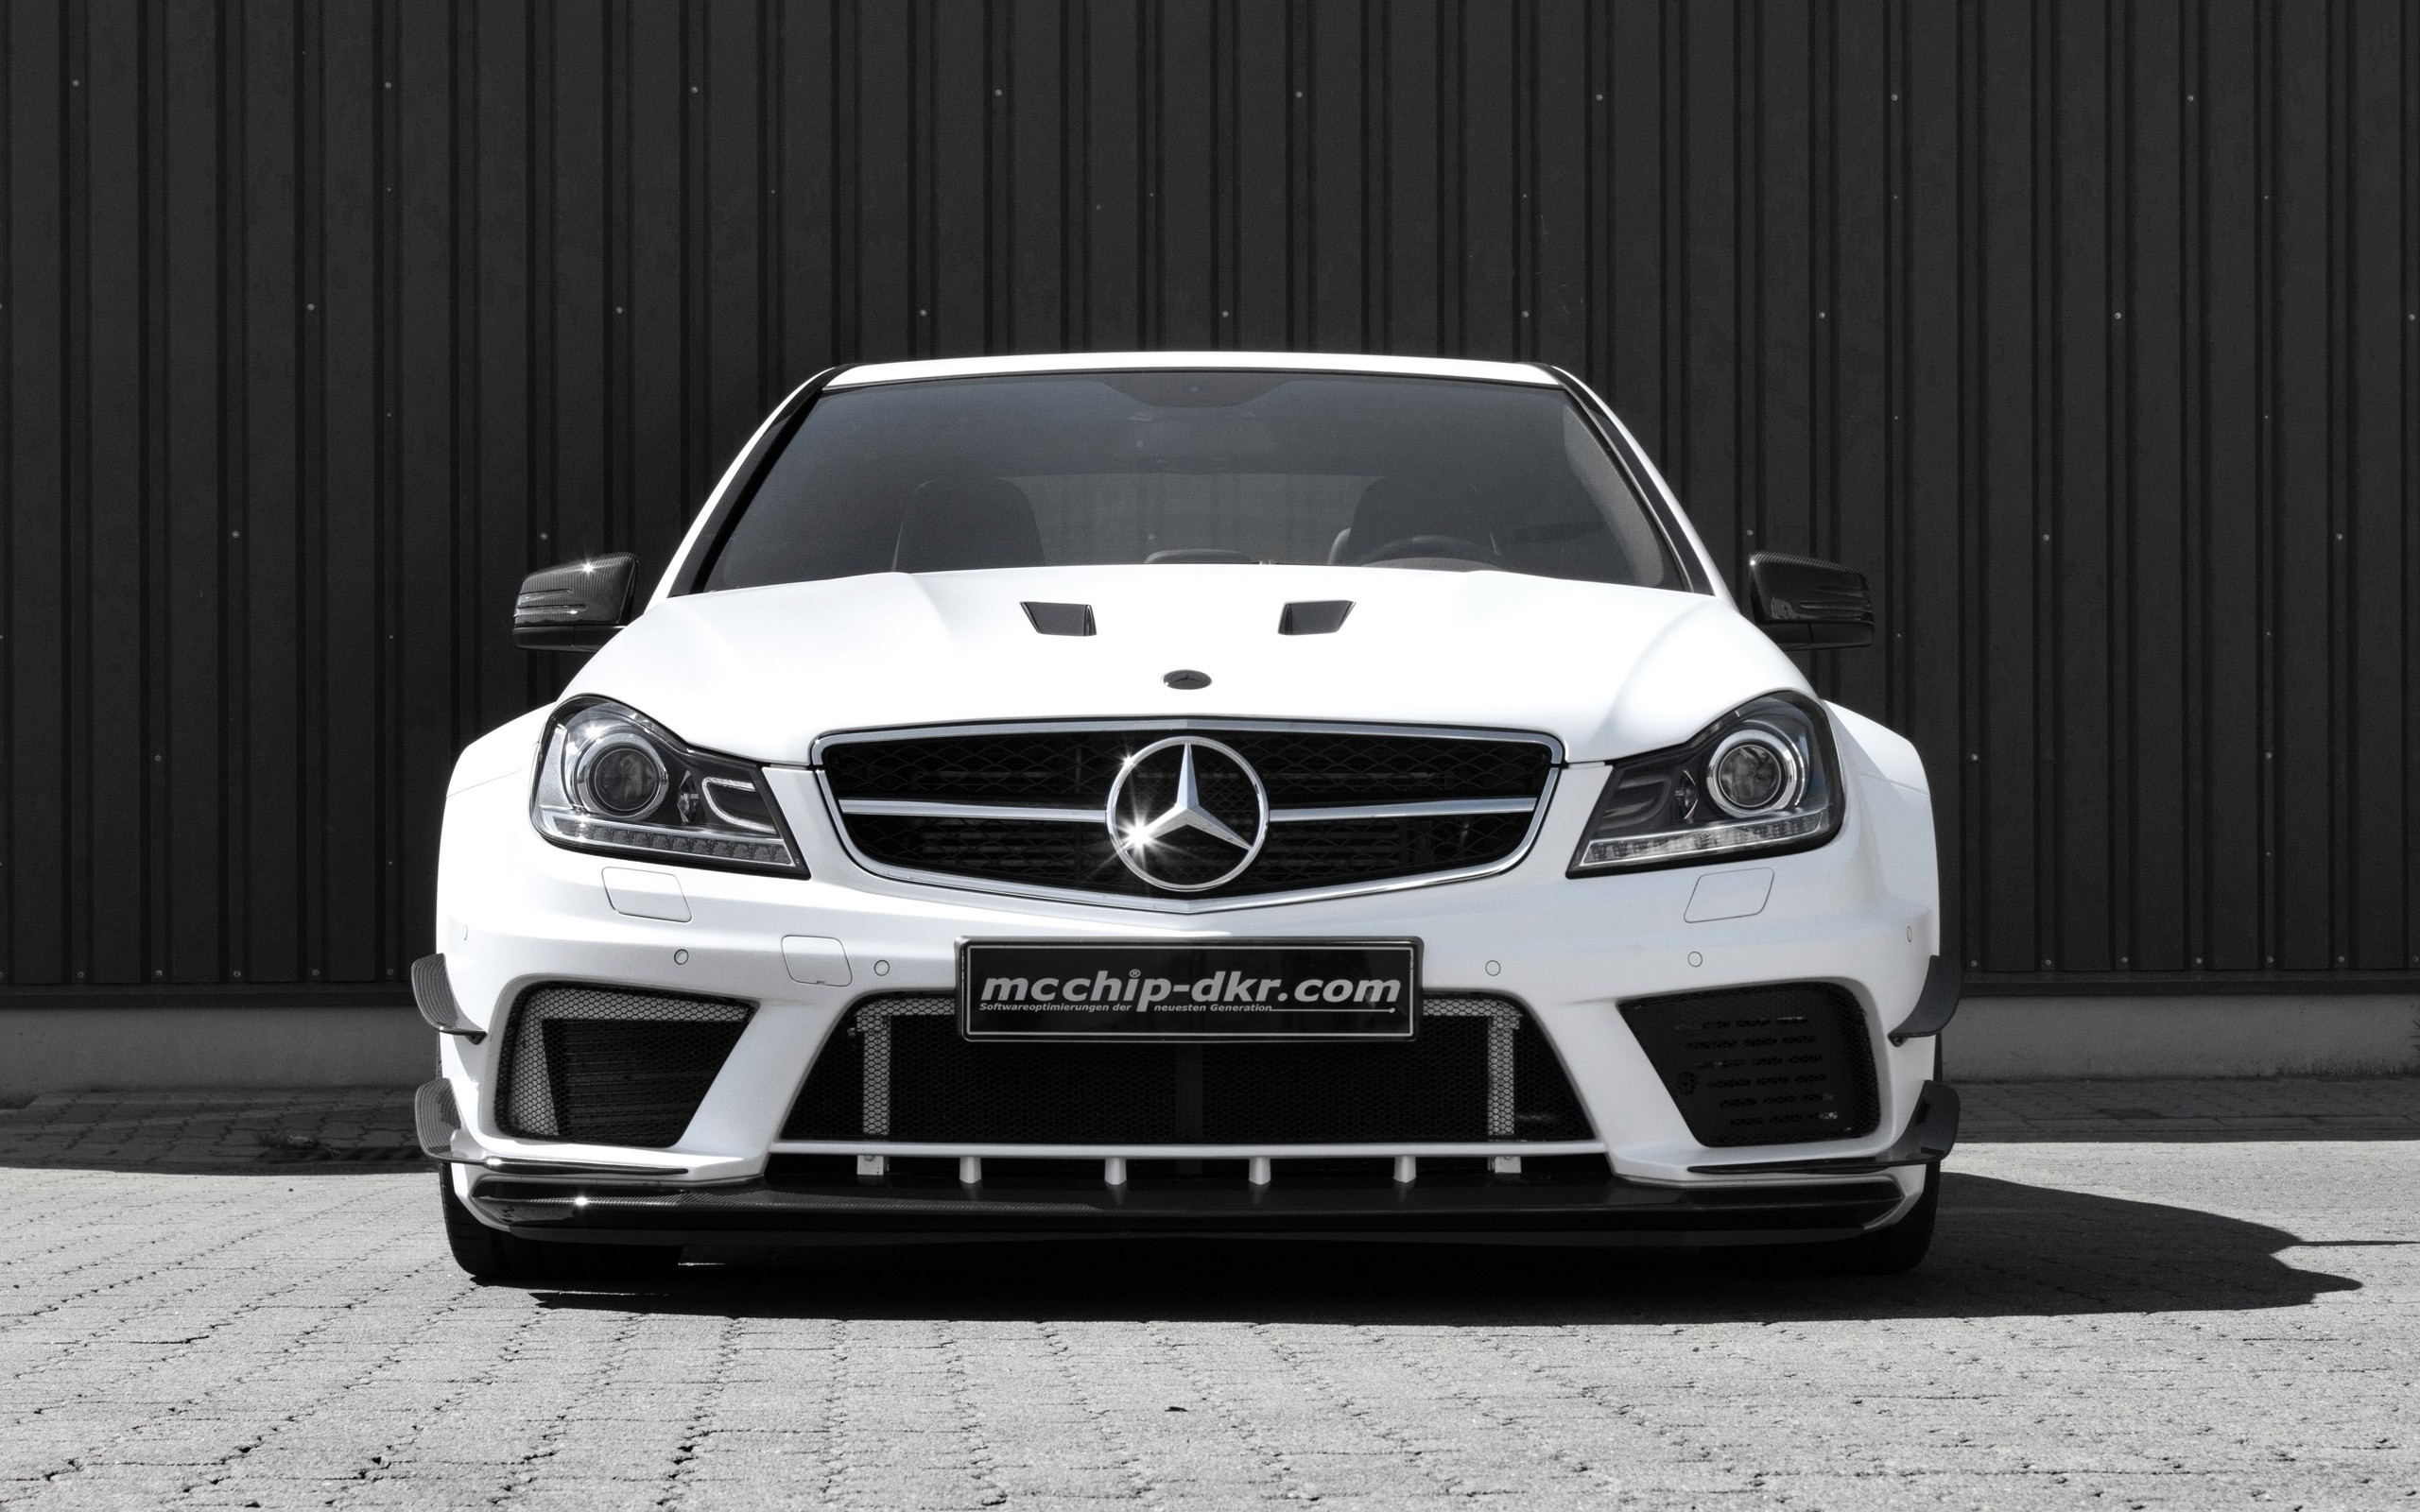 2014 mercedes benz c63 amg mc8xx by mcchip dkr wallpaper. Black Bedroom Furniture Sets. Home Design Ideas